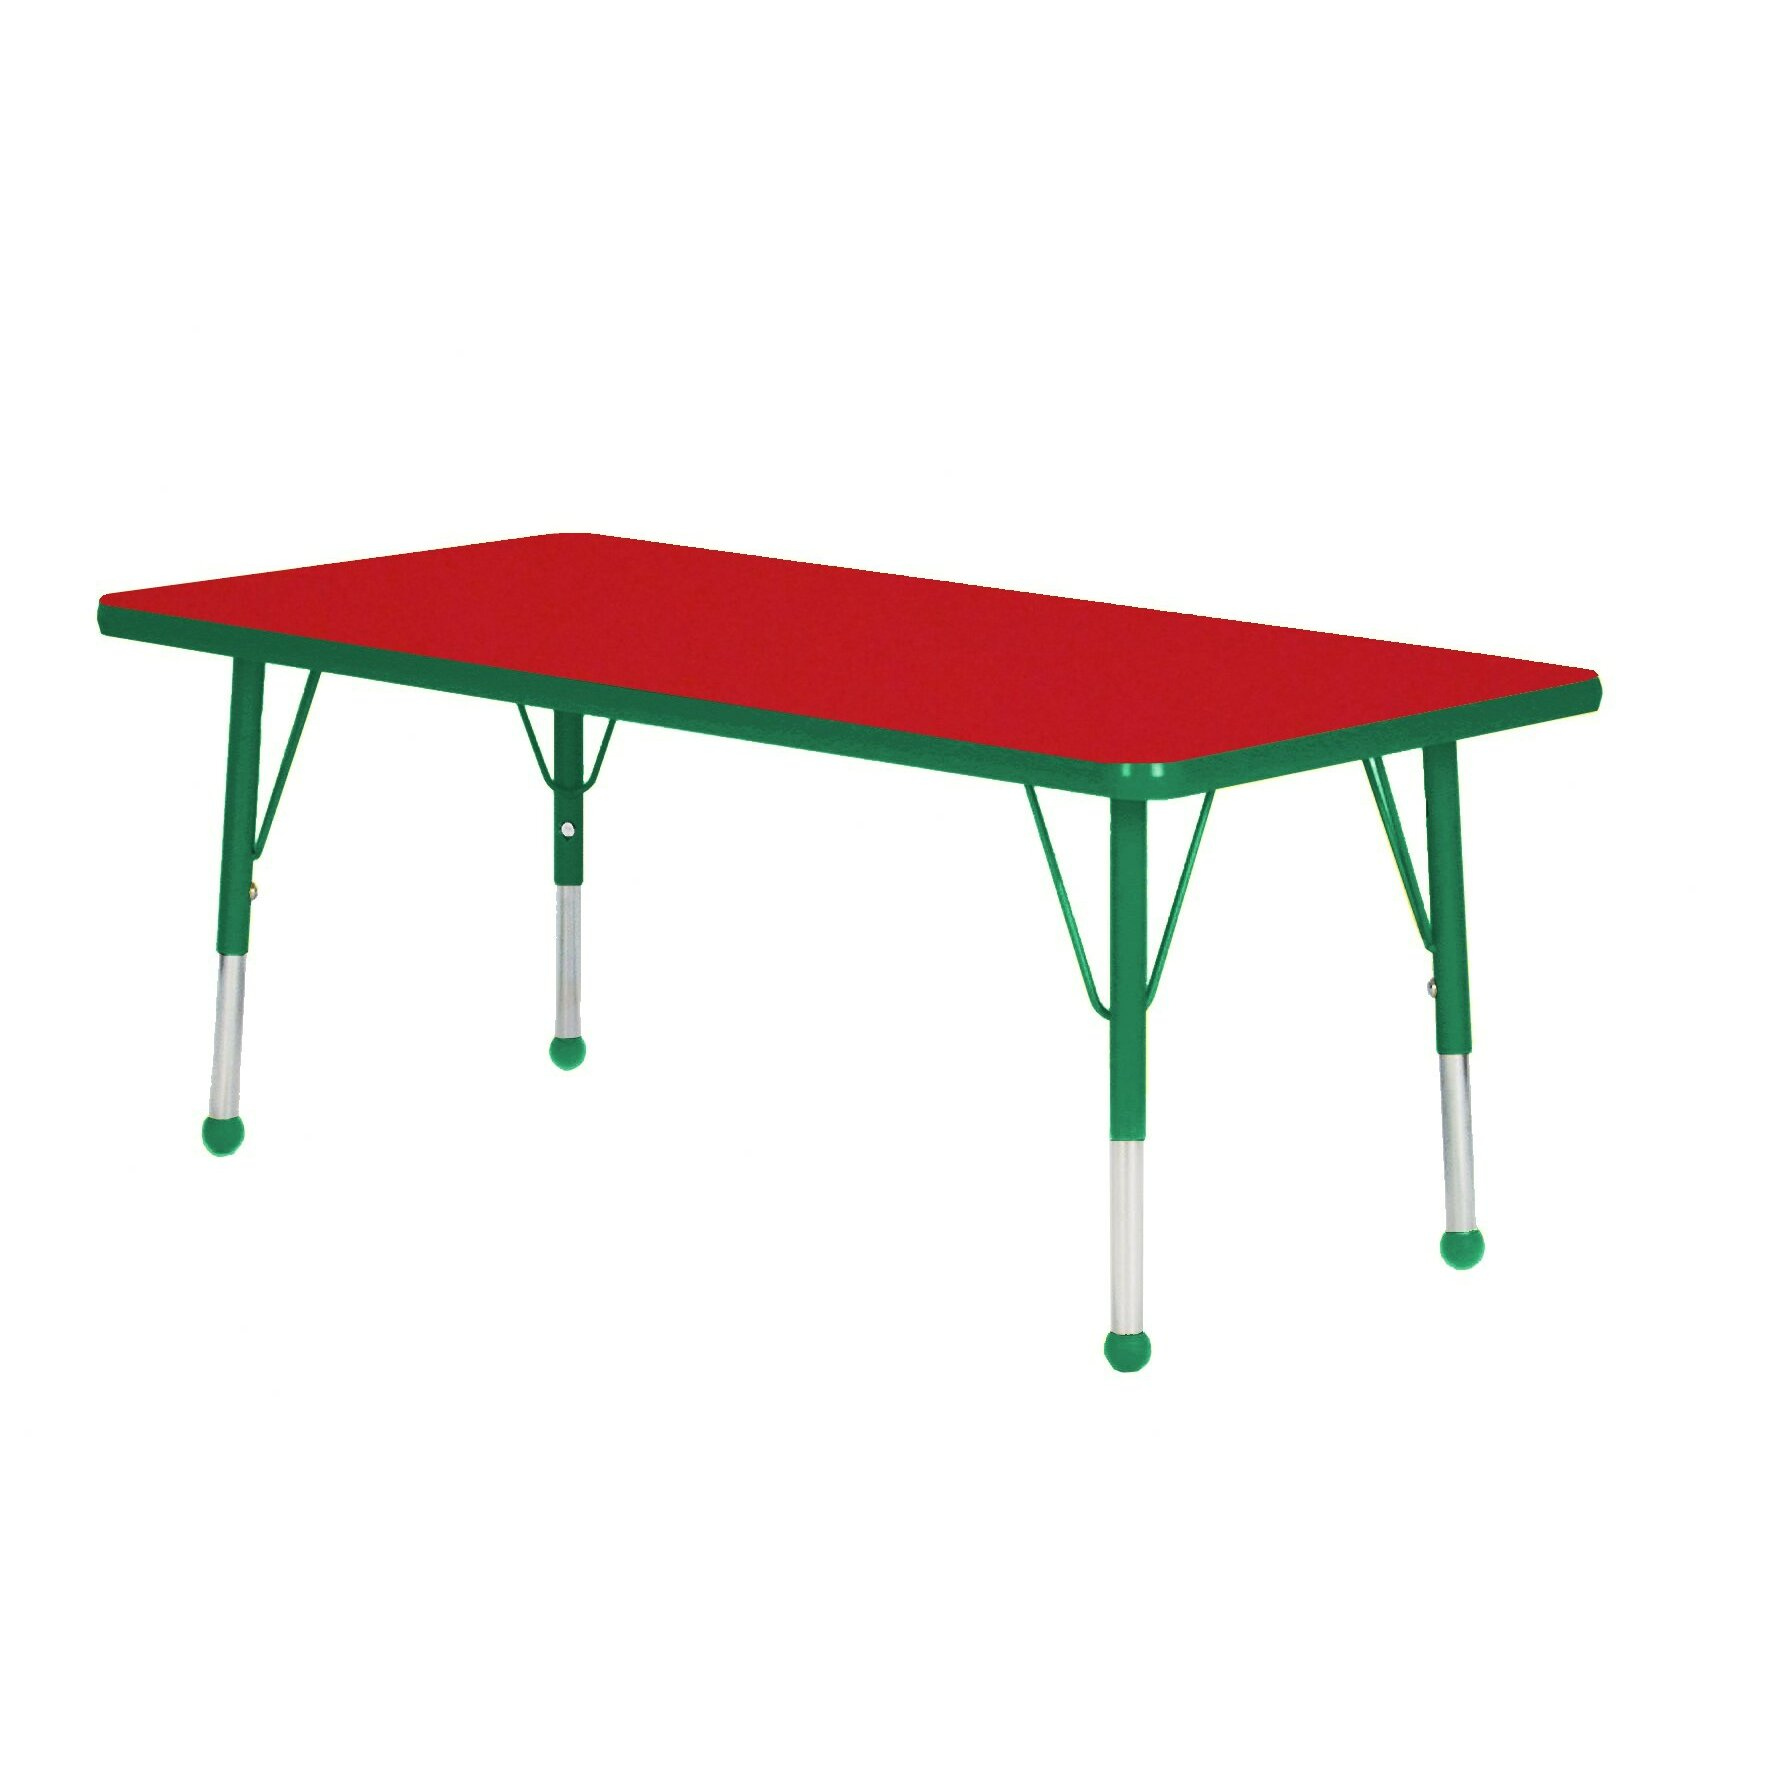 30 X 48 Folding Table picture on 48 x 24 Rectangular Classroom Table ZF1215 with 30 X 48 Folding Table, Folding Table 573ac89dd05b90f8d0a8105b2dec0f5e